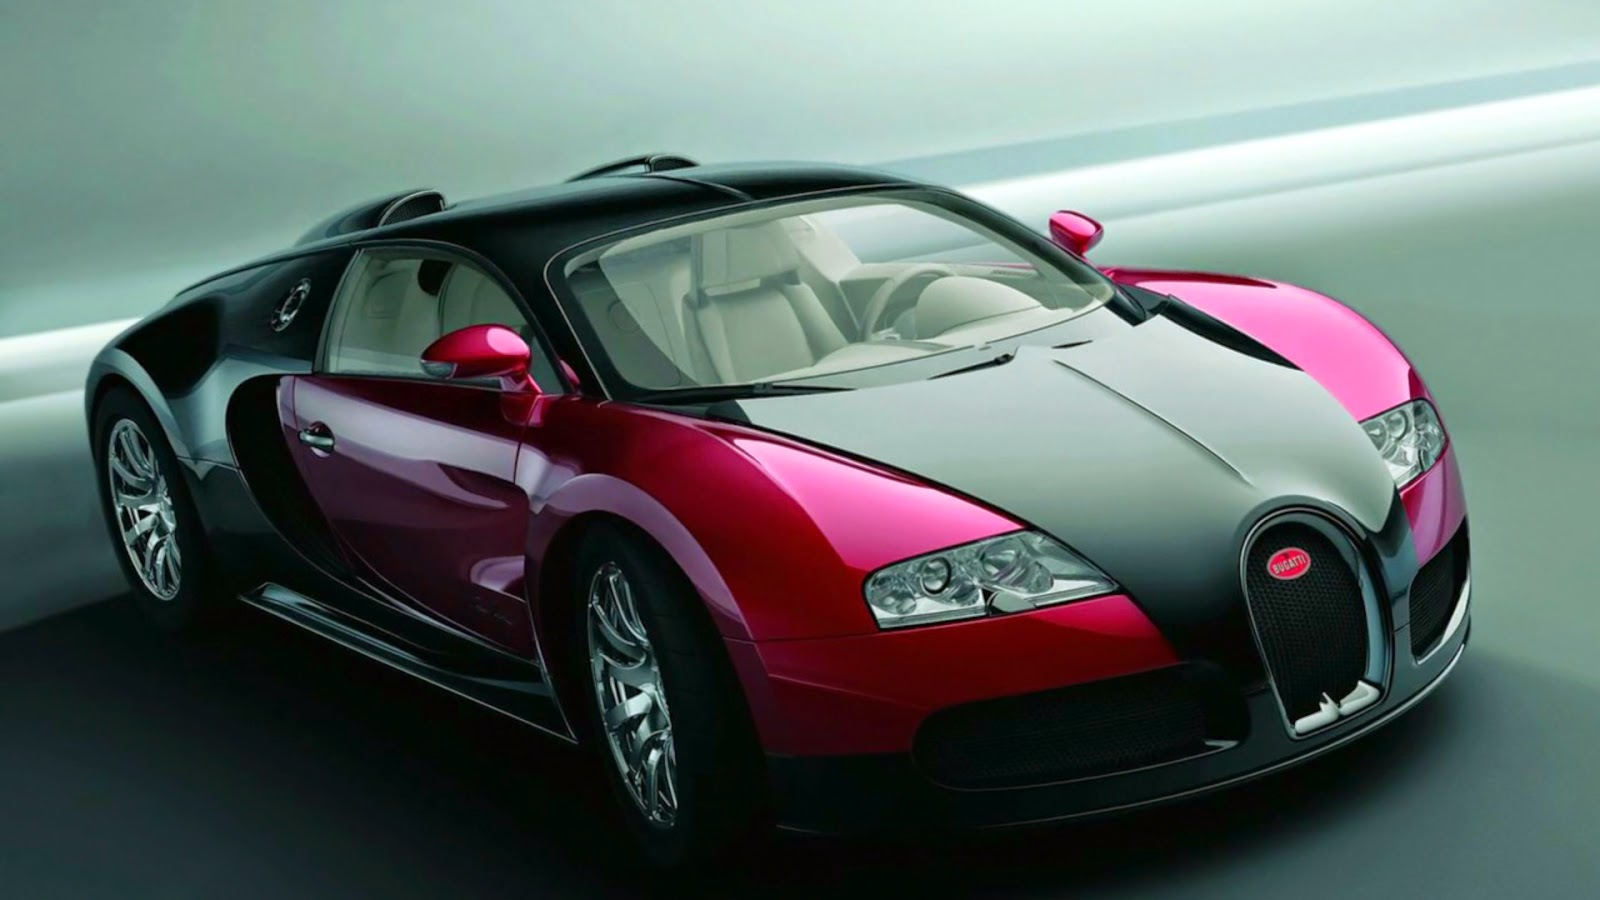 Bugatti Super Veyron HD Wallpaper